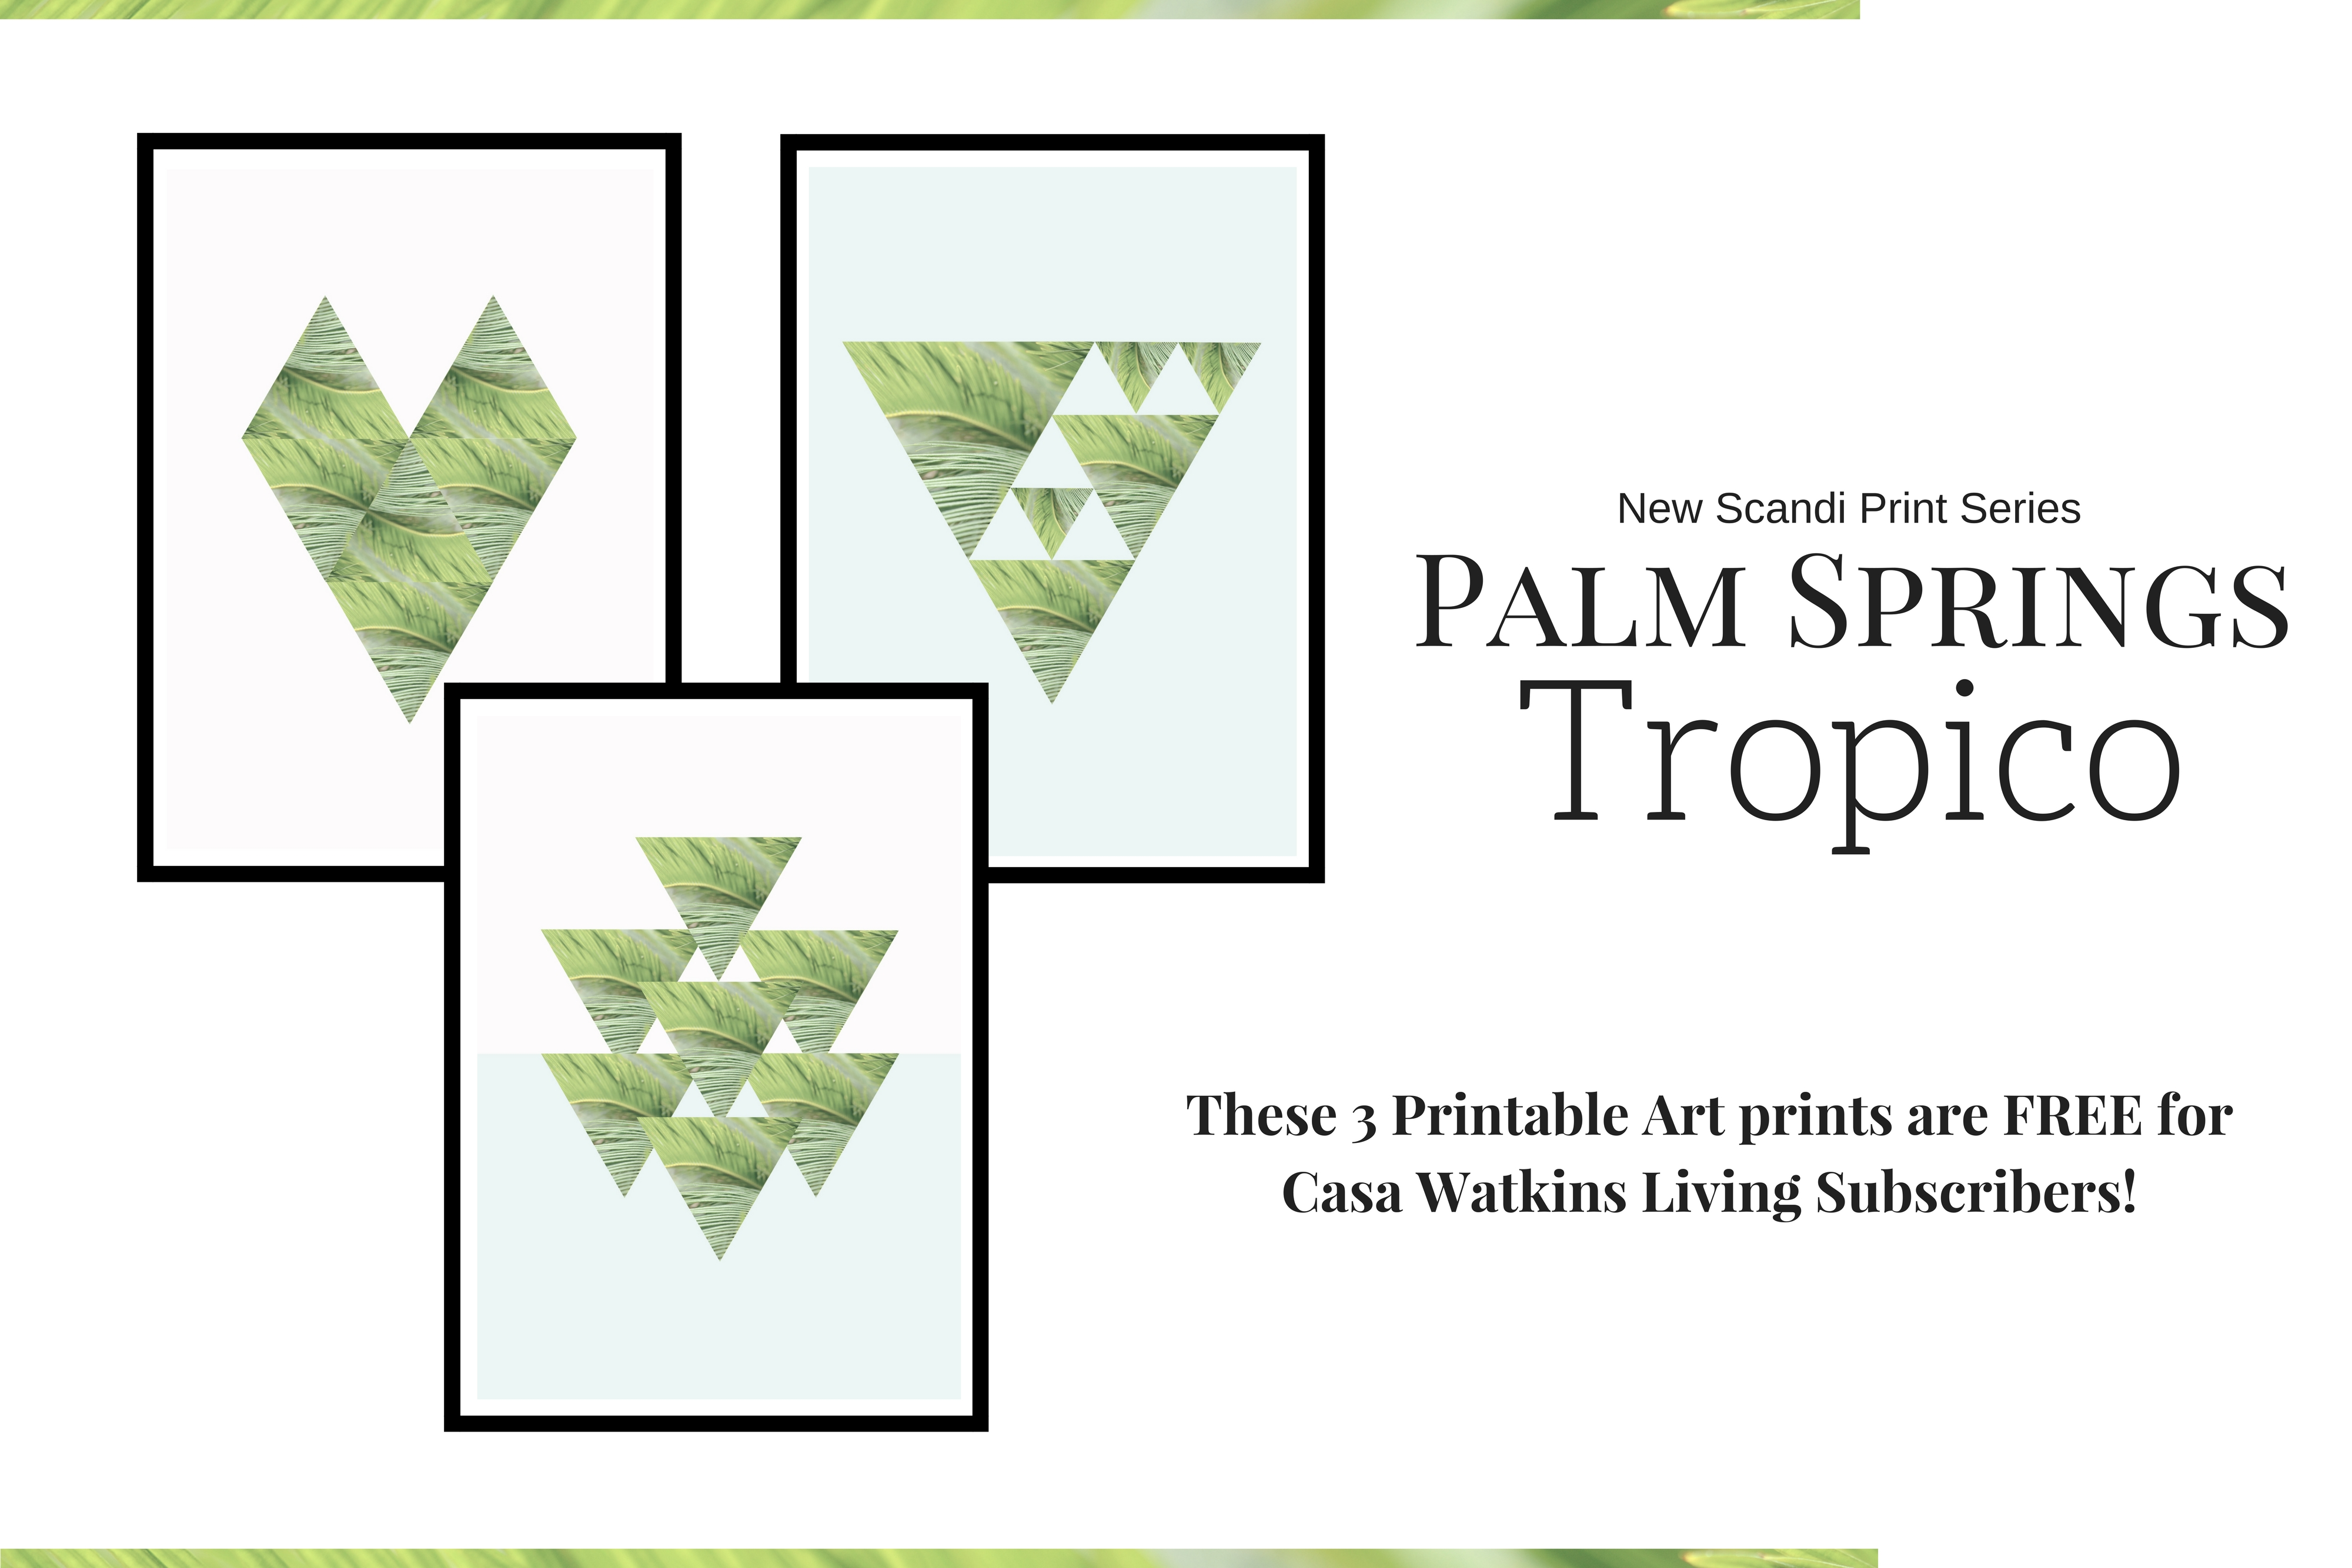 Free Scandi style prints with tropical flair for Subscribers